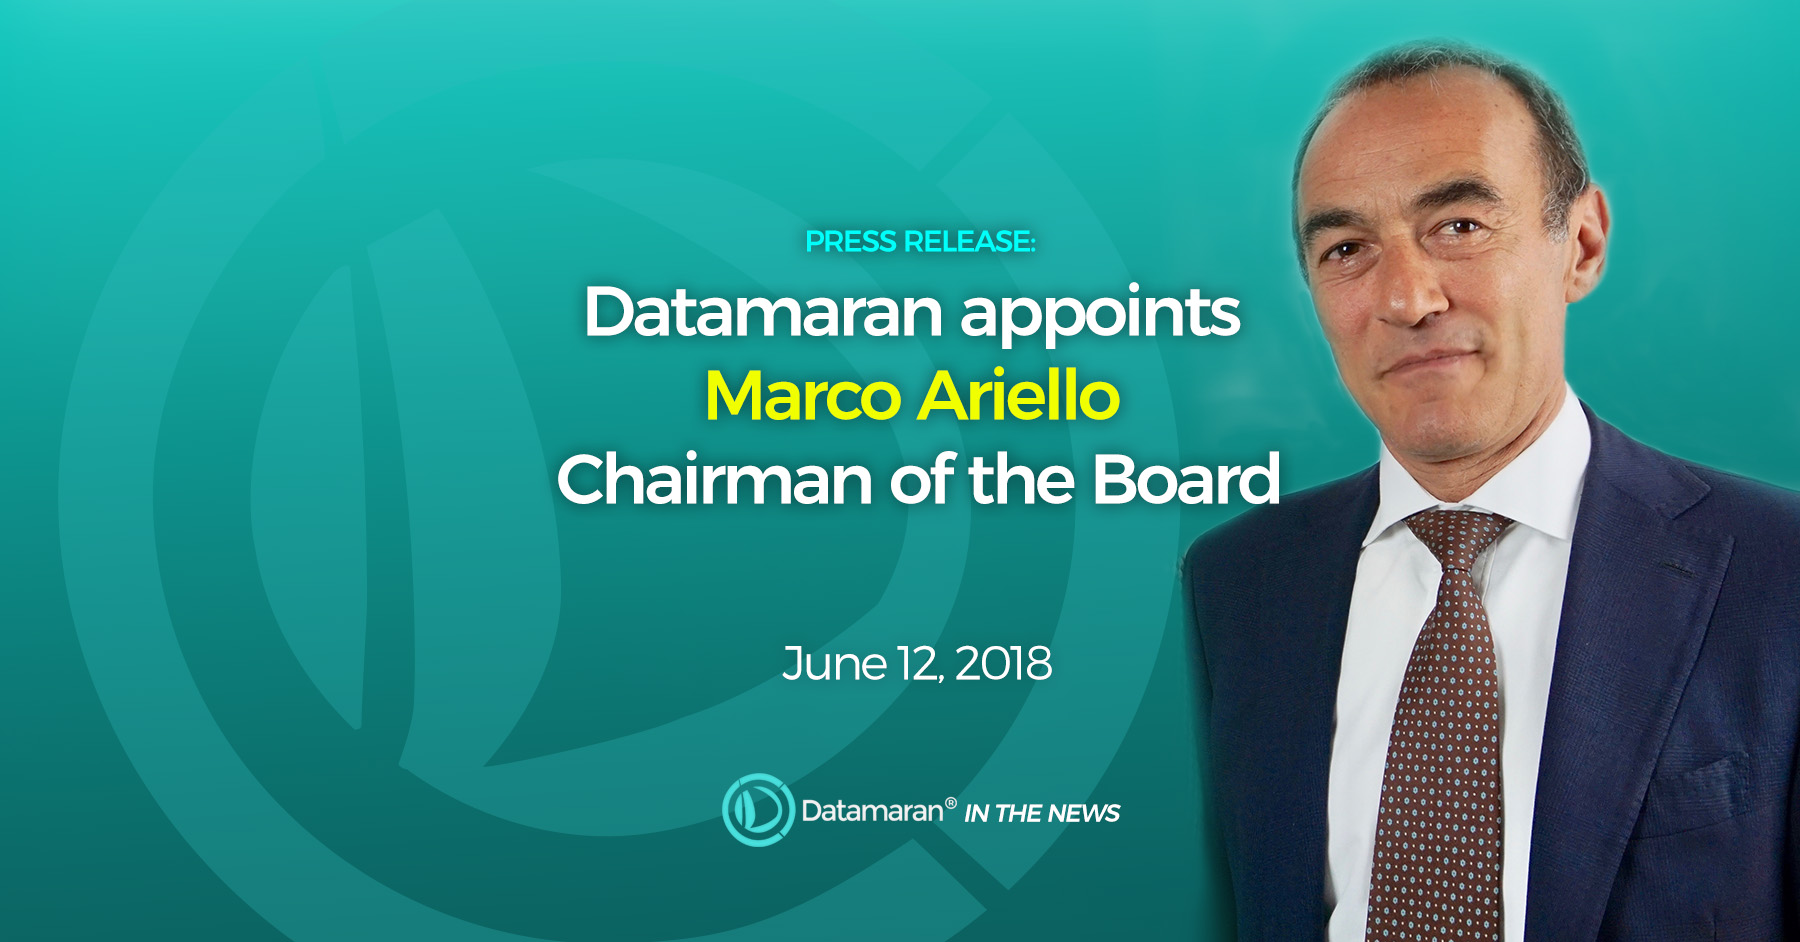 Datamaran appoint Marco Ariello Chairman of the board